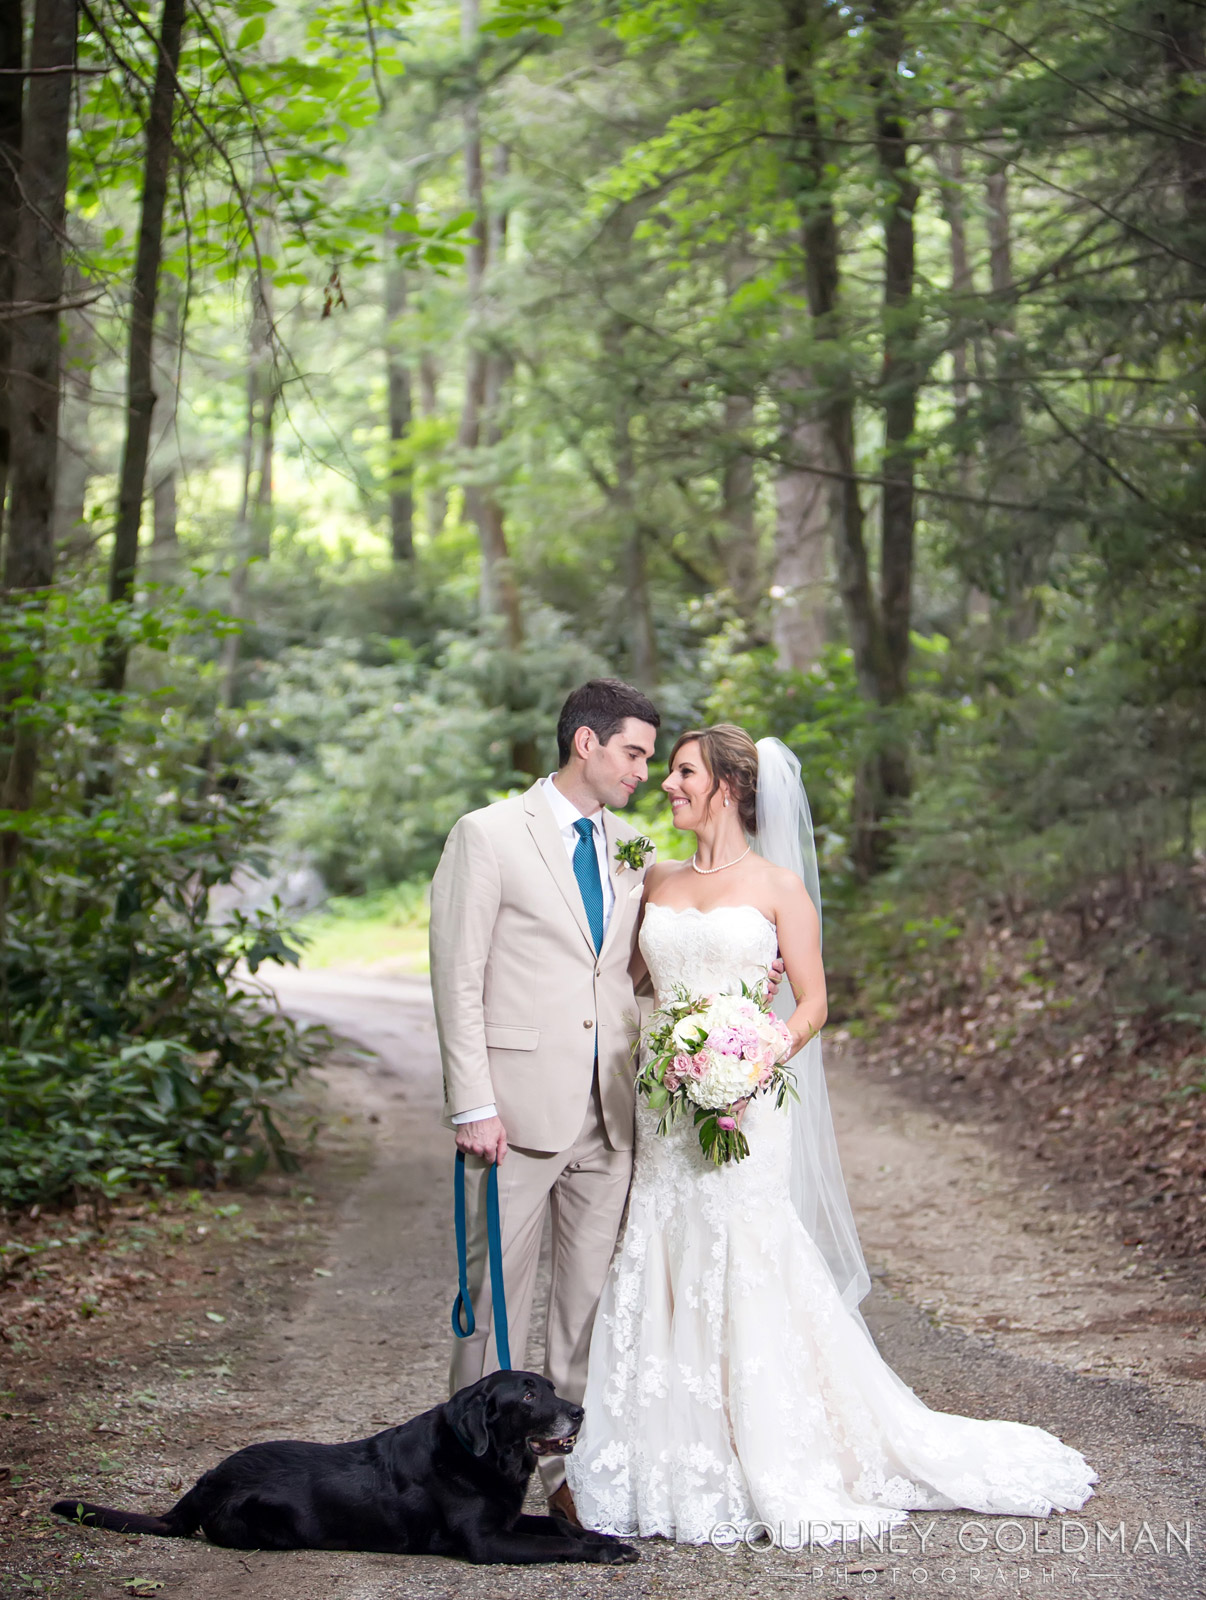 Atlanta-Wedding-Photography-by-Courtney-Goldman-18.jpg